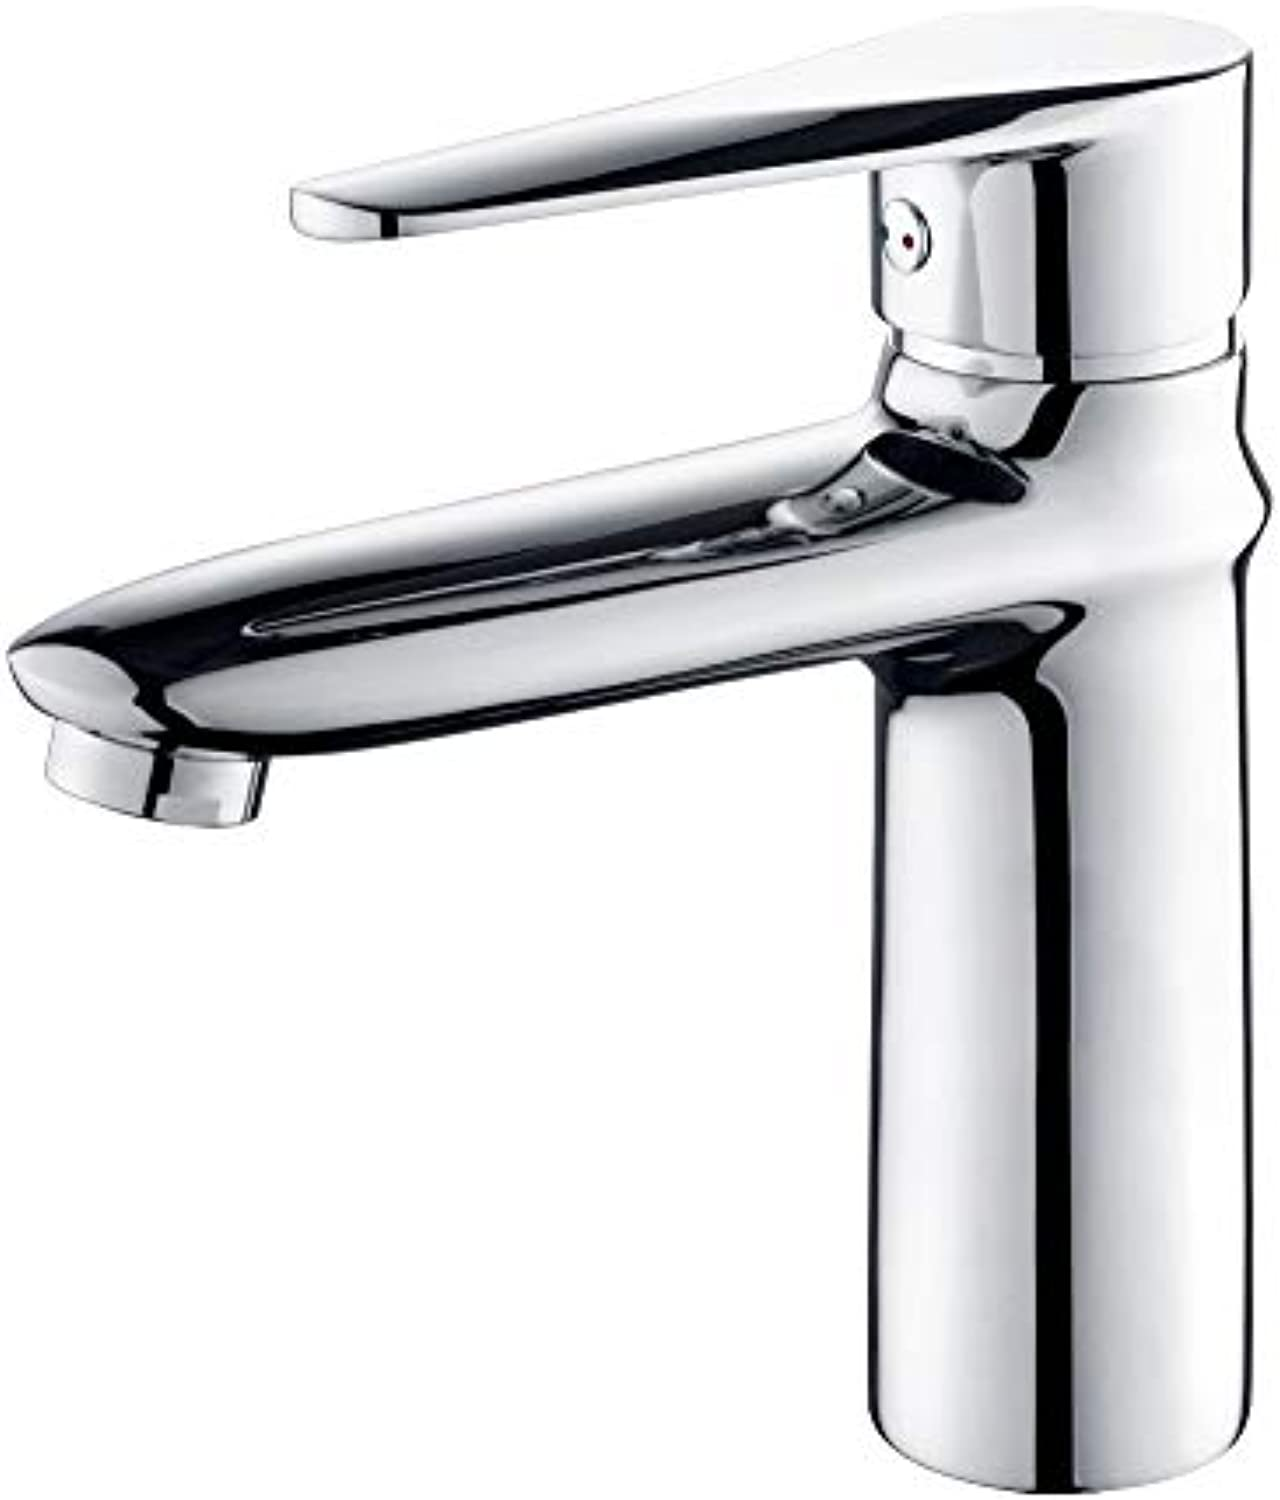 ALVAR Basin Mixer Taps, Bathroom Sink Mixer Faucet Single Lever Handle Chrome Leadless Brass,Switchthe Cold & Warm Water with The Flexible Handle